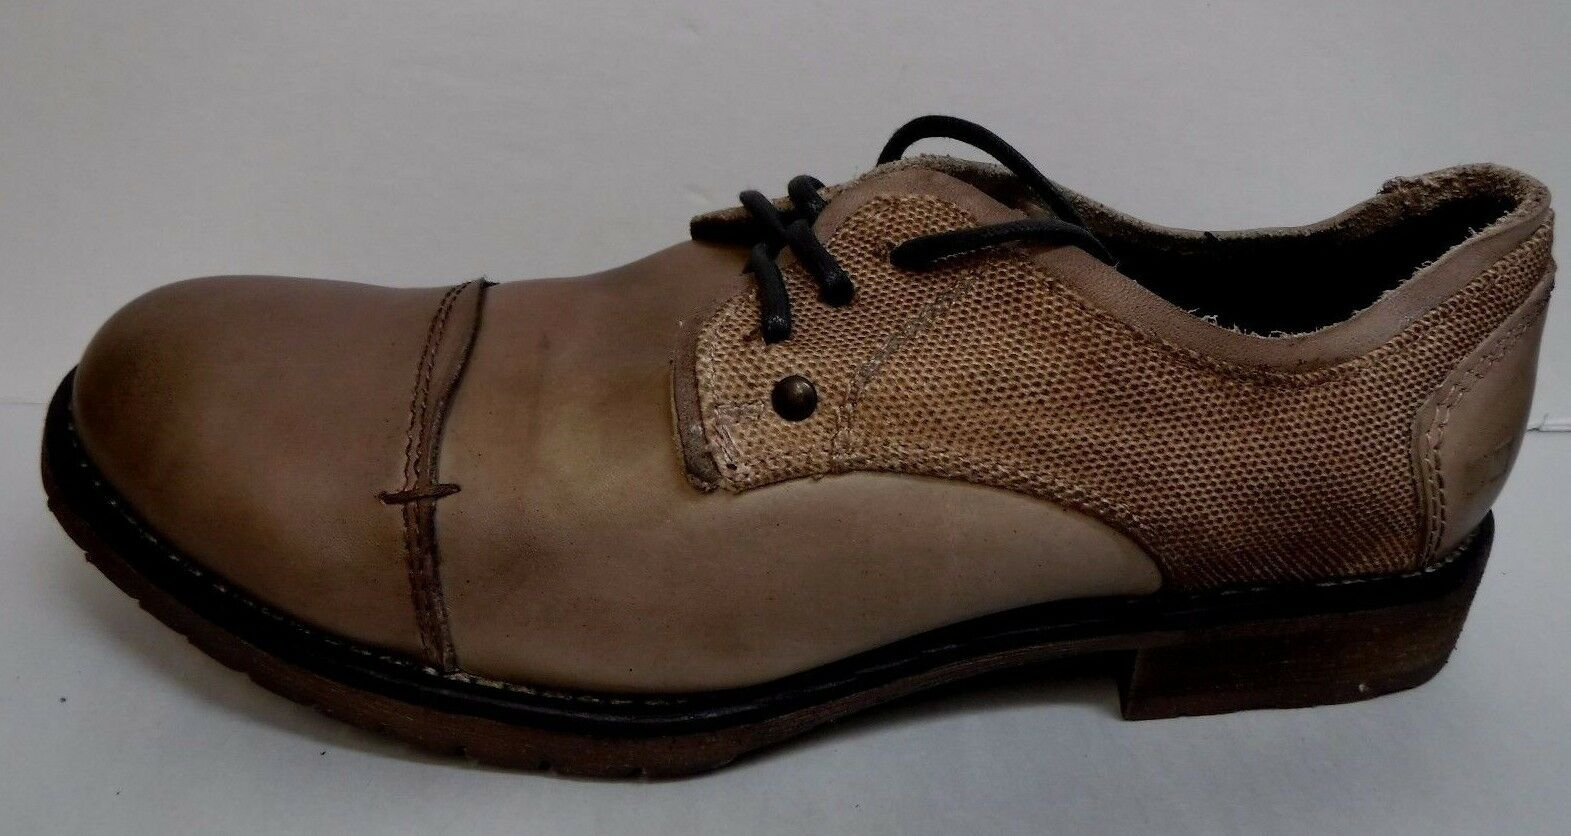 Bed Stu Size 8.5 Dirty Mocha Leather Oxfords New Mens Shoes